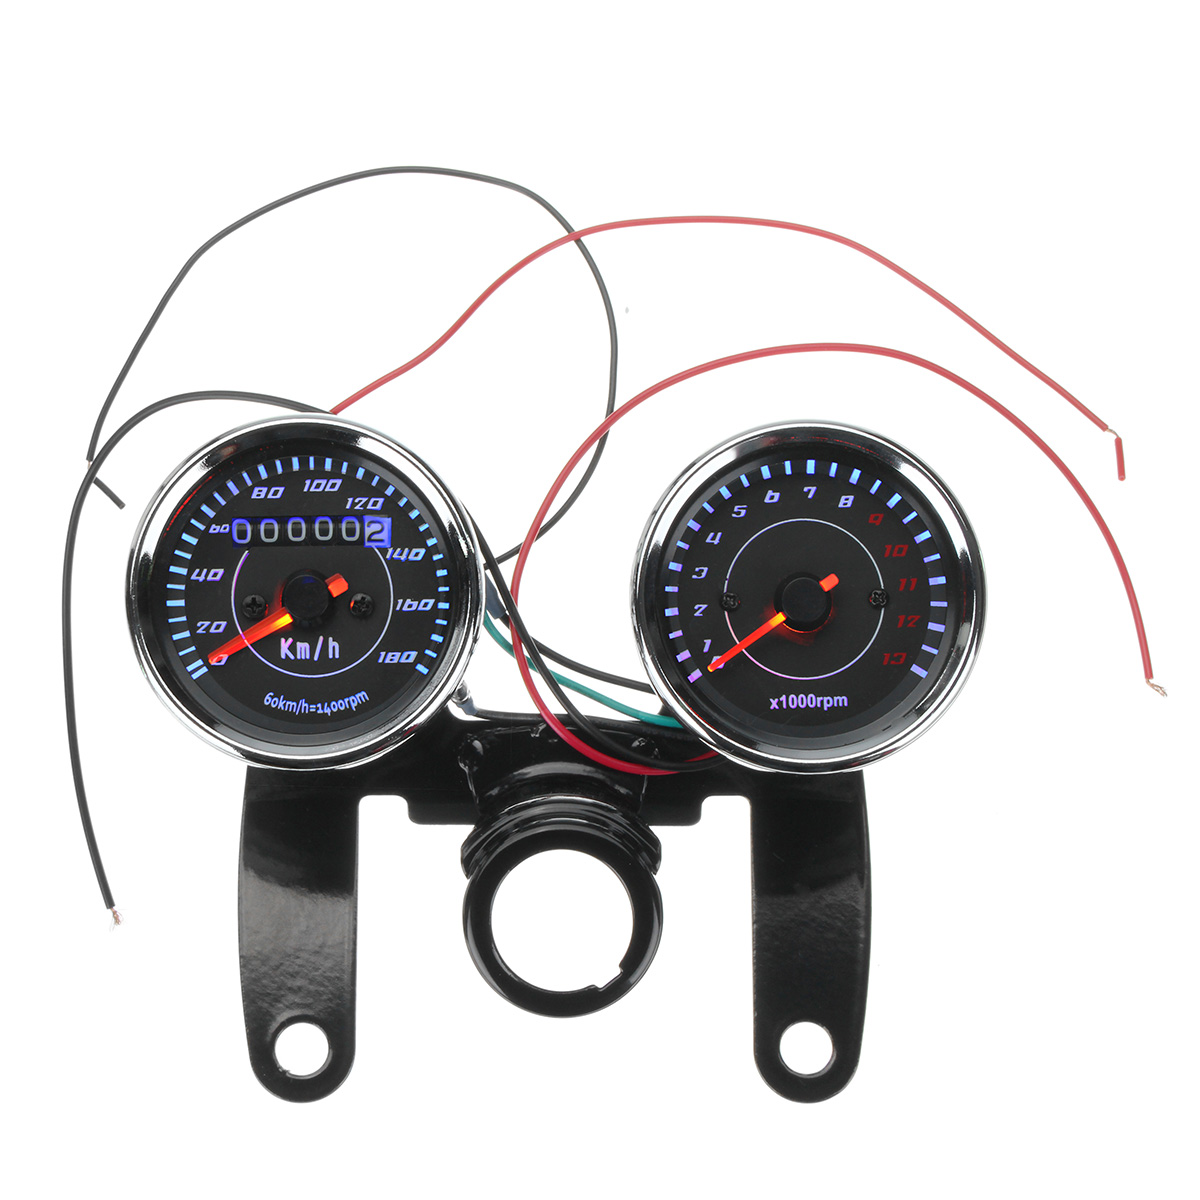 0-180km/h 12V Universal Motorcycle Bike LED Odometer Sp